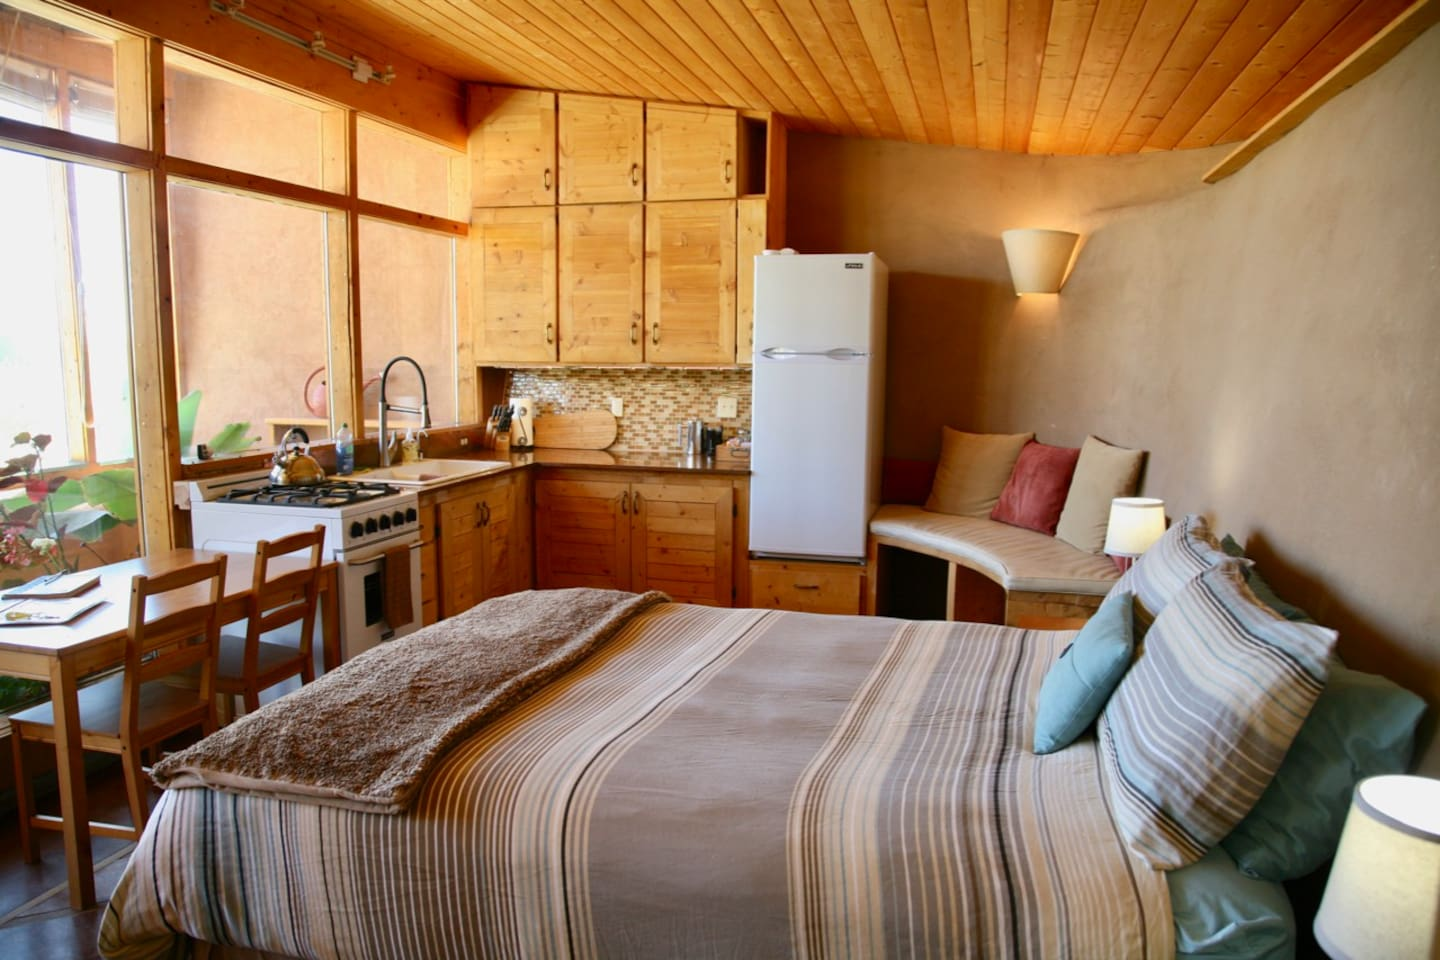 Welcome to our brand new Earthship Tiny Home!   Off-the-grid with all the comforts.